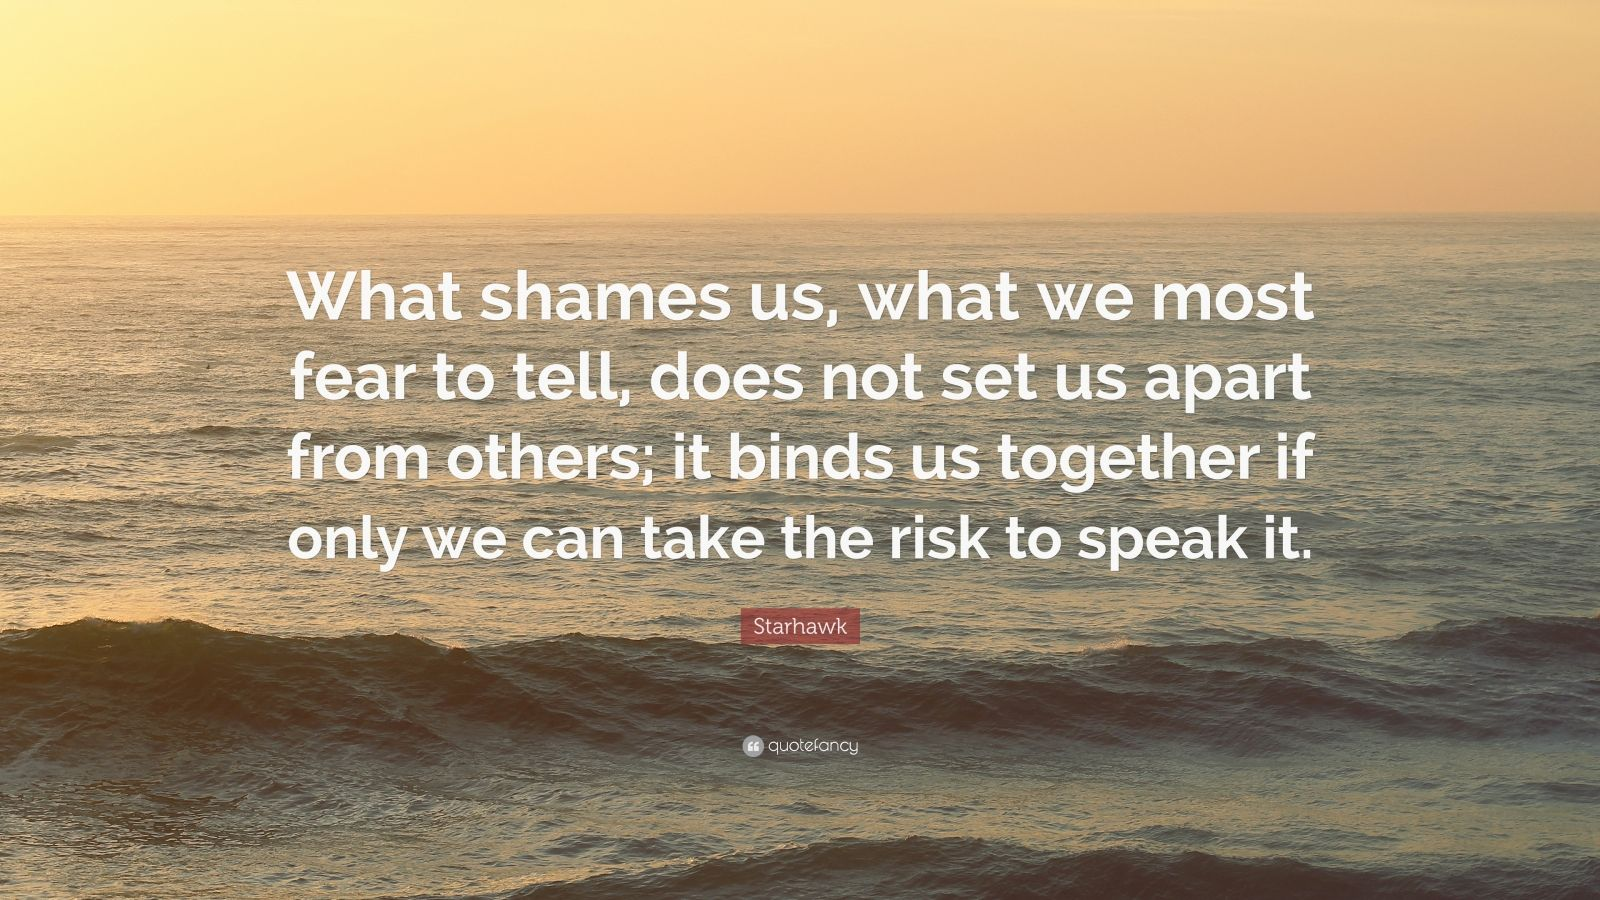 """Starhawk Quote: """"What shames us, what we most fear to tell, does not set us apart from others; it binds us together if only we can take the risk to speak it."""""""